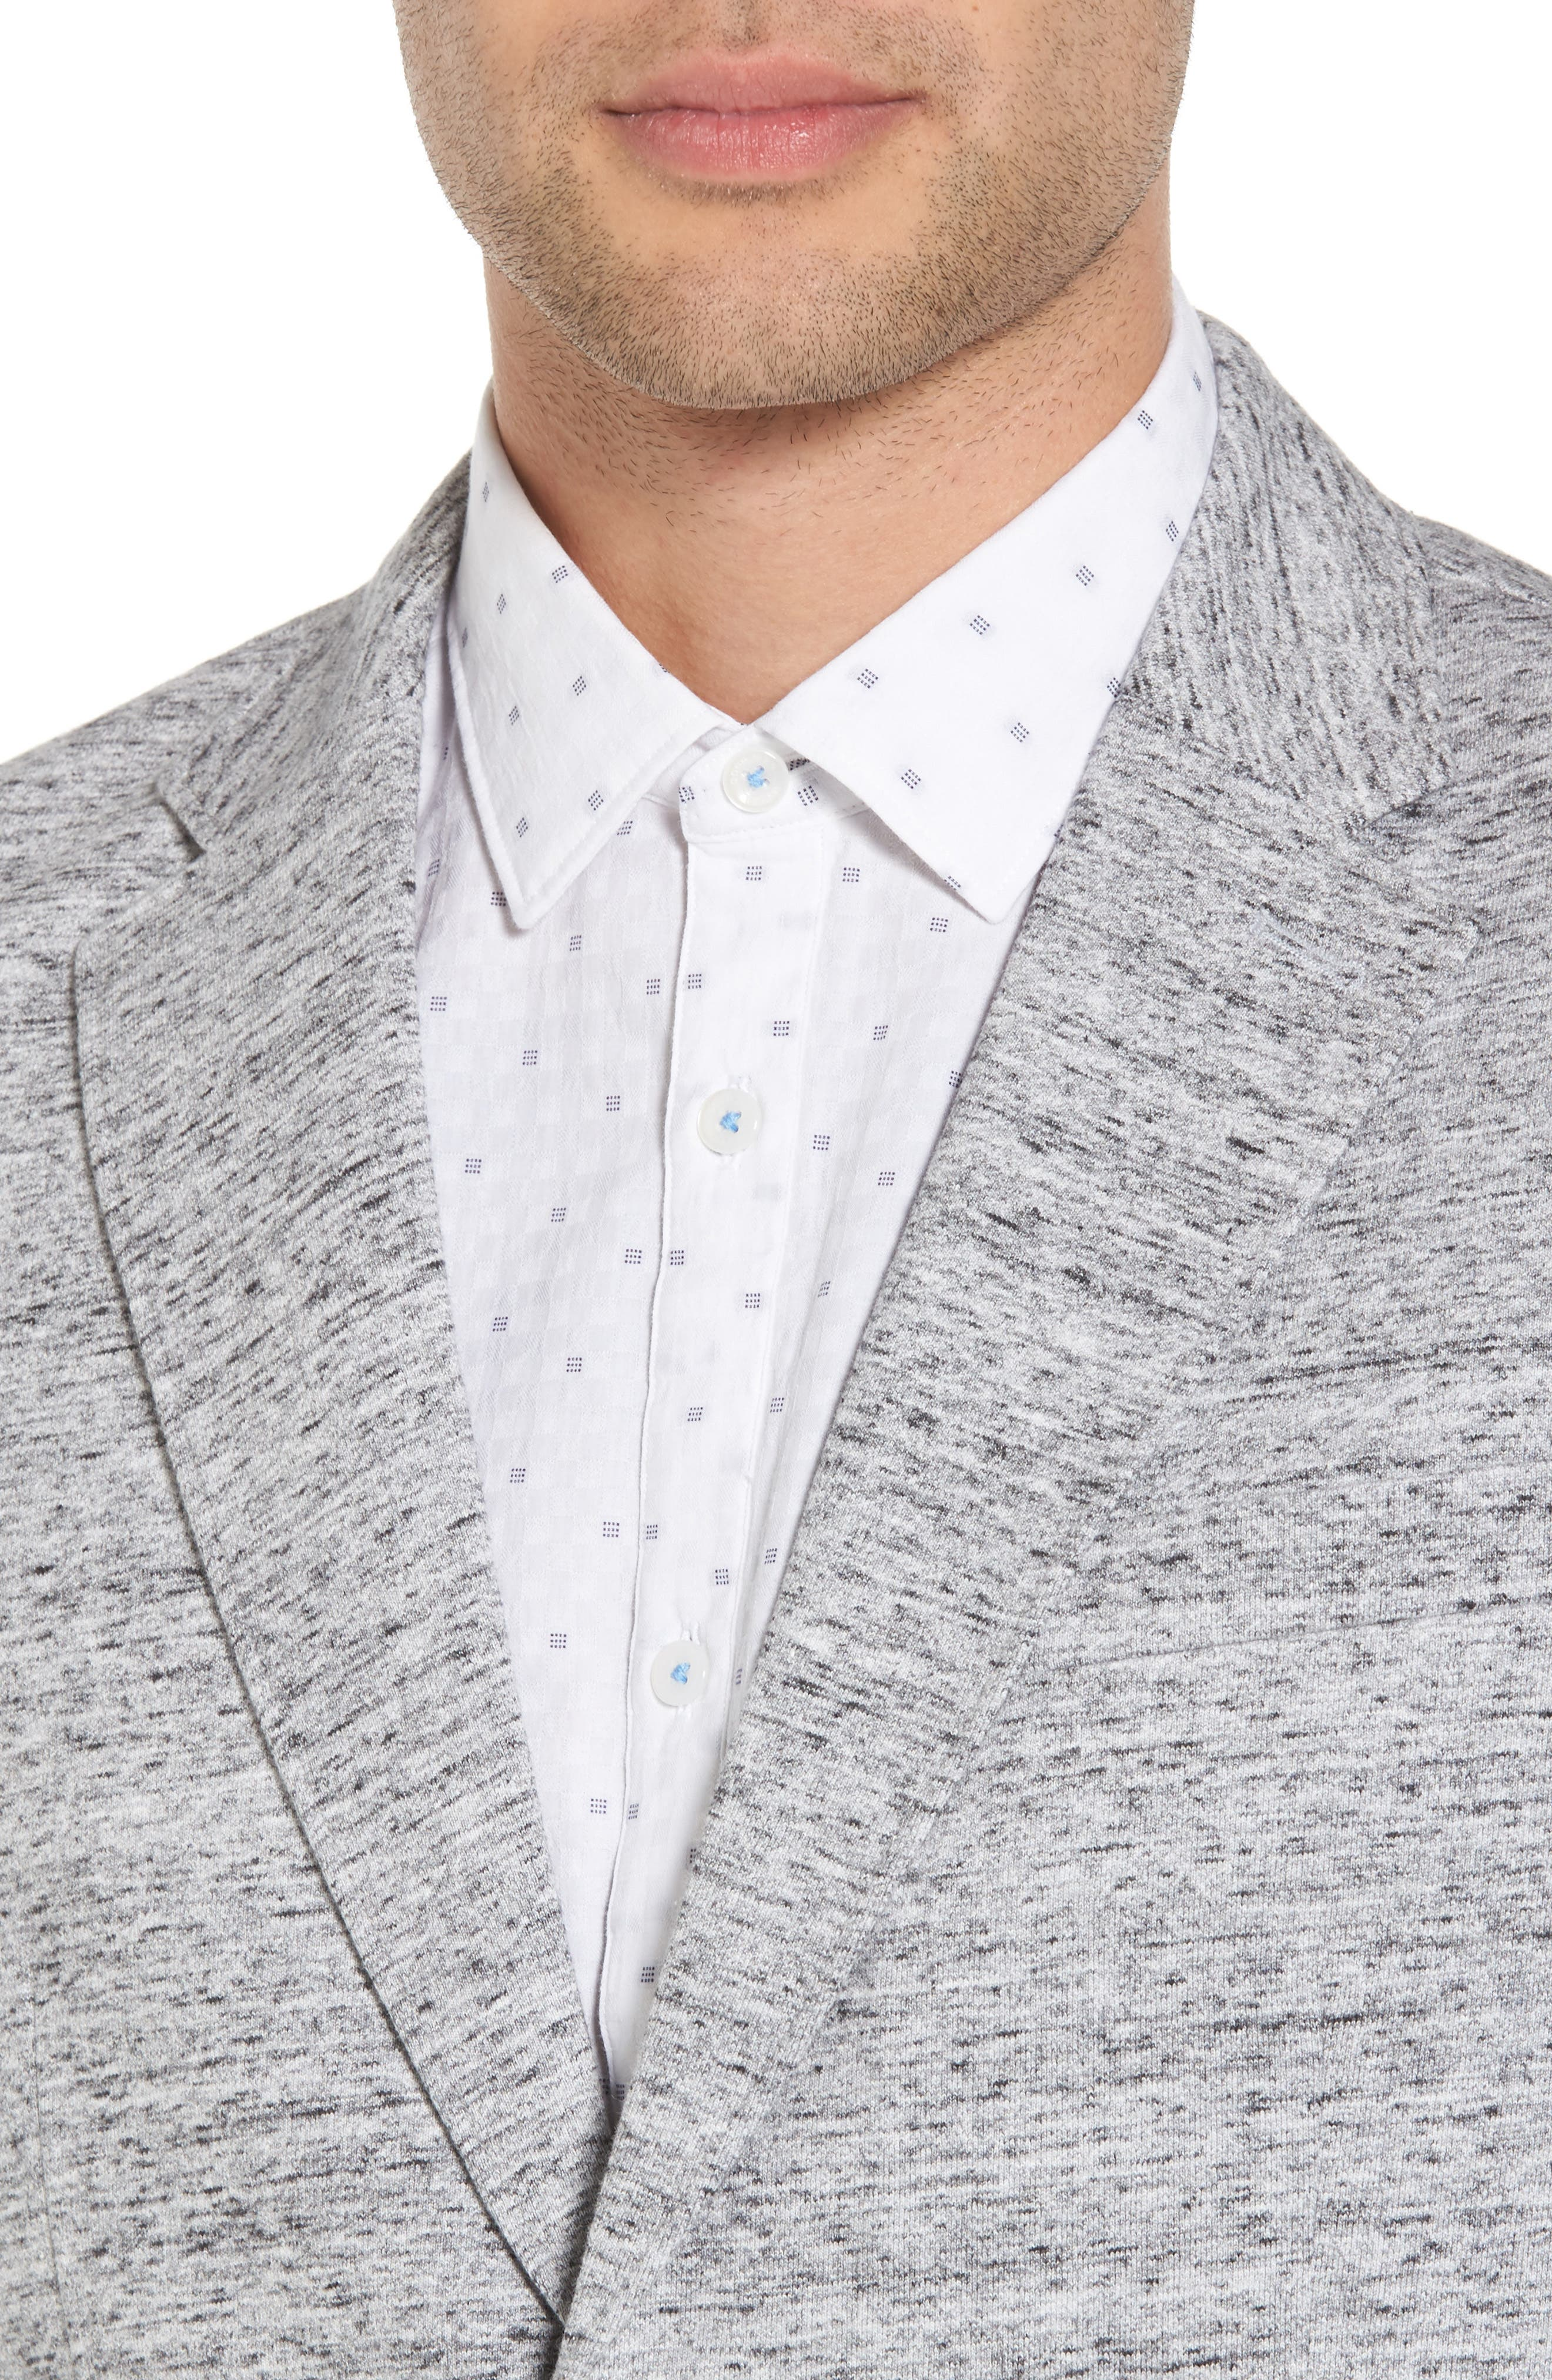 Soft Cotton Unconstructed Blazer,                             Alternate thumbnail 4, color,                             Grey Heather / White